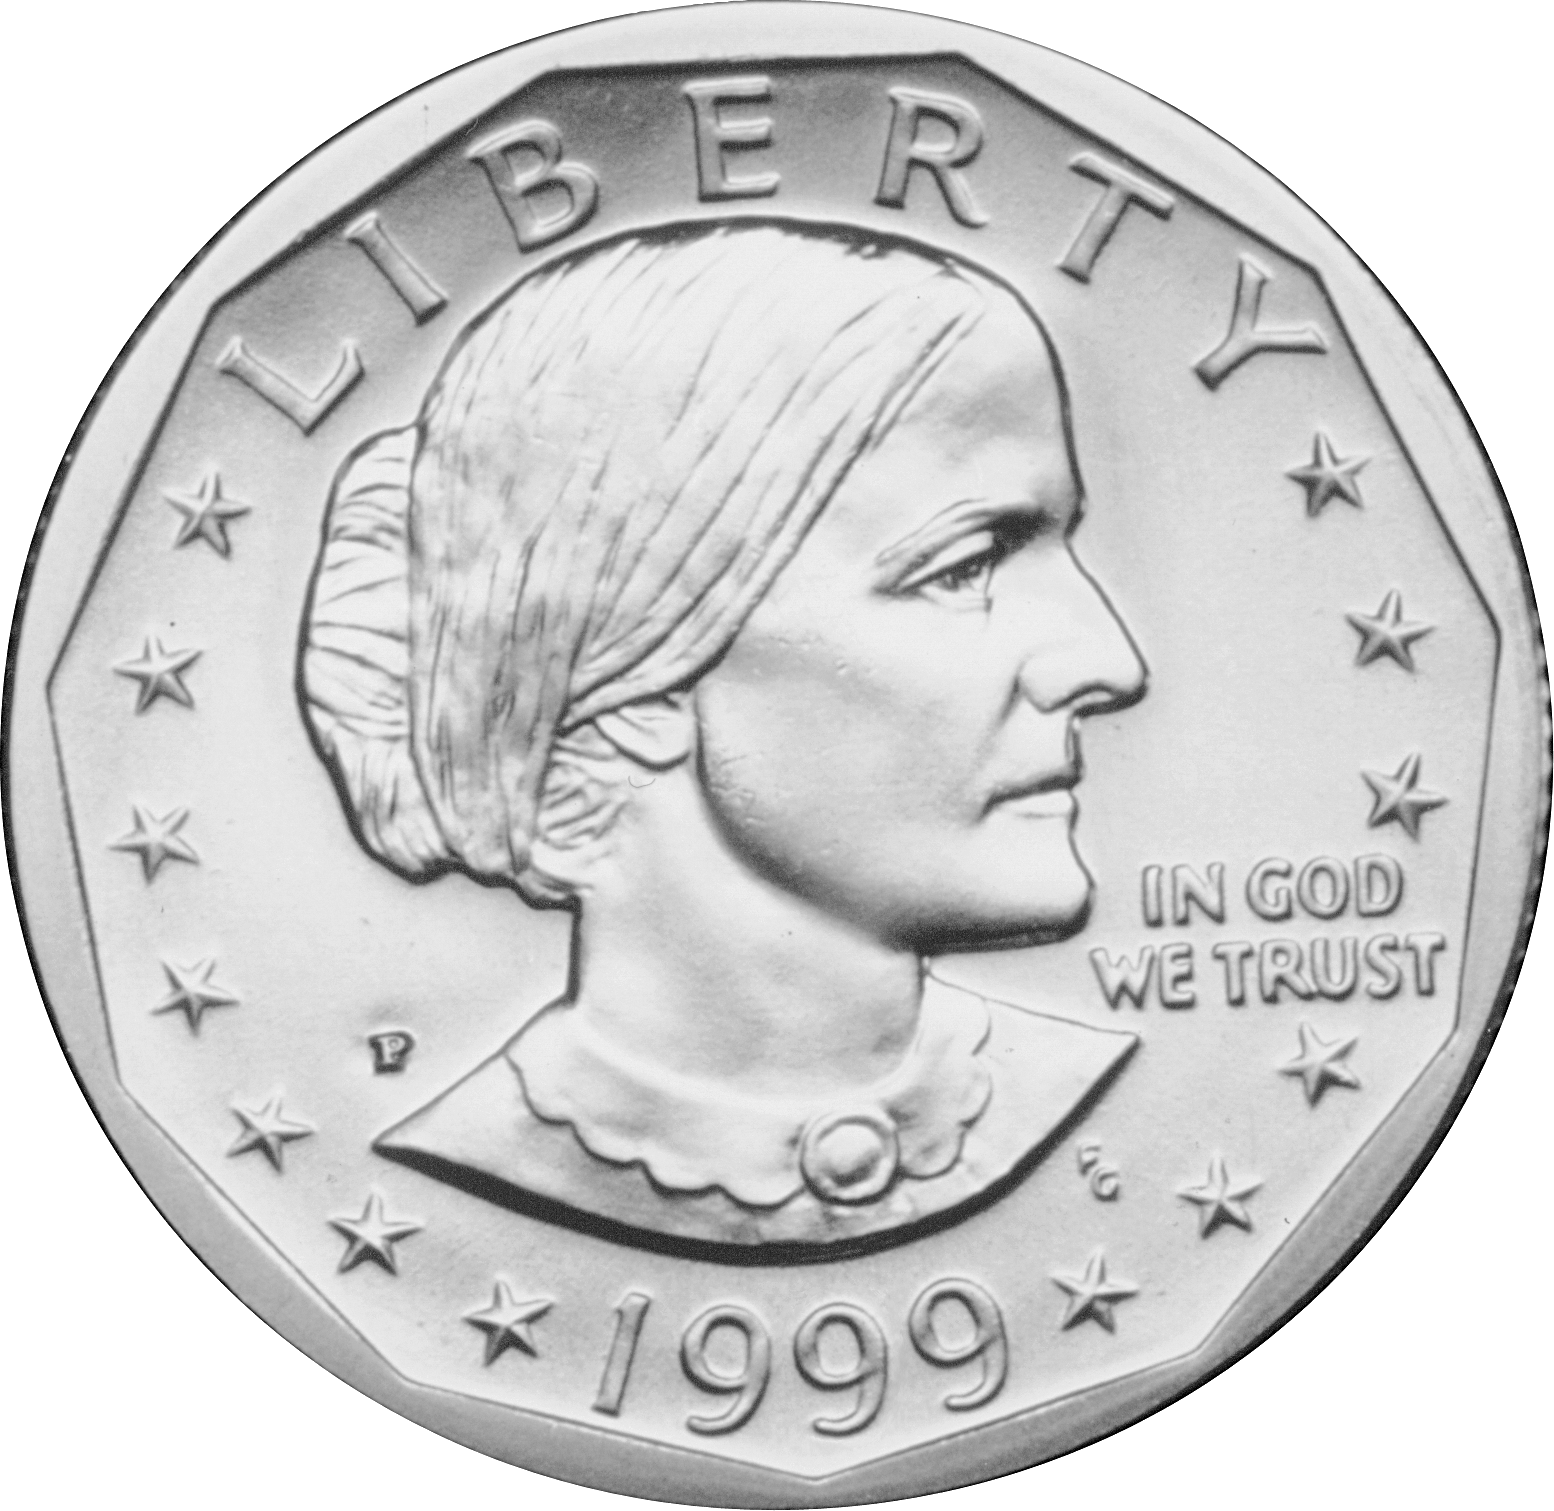 Nickel clipart penny tail. Susan b anthony dollar